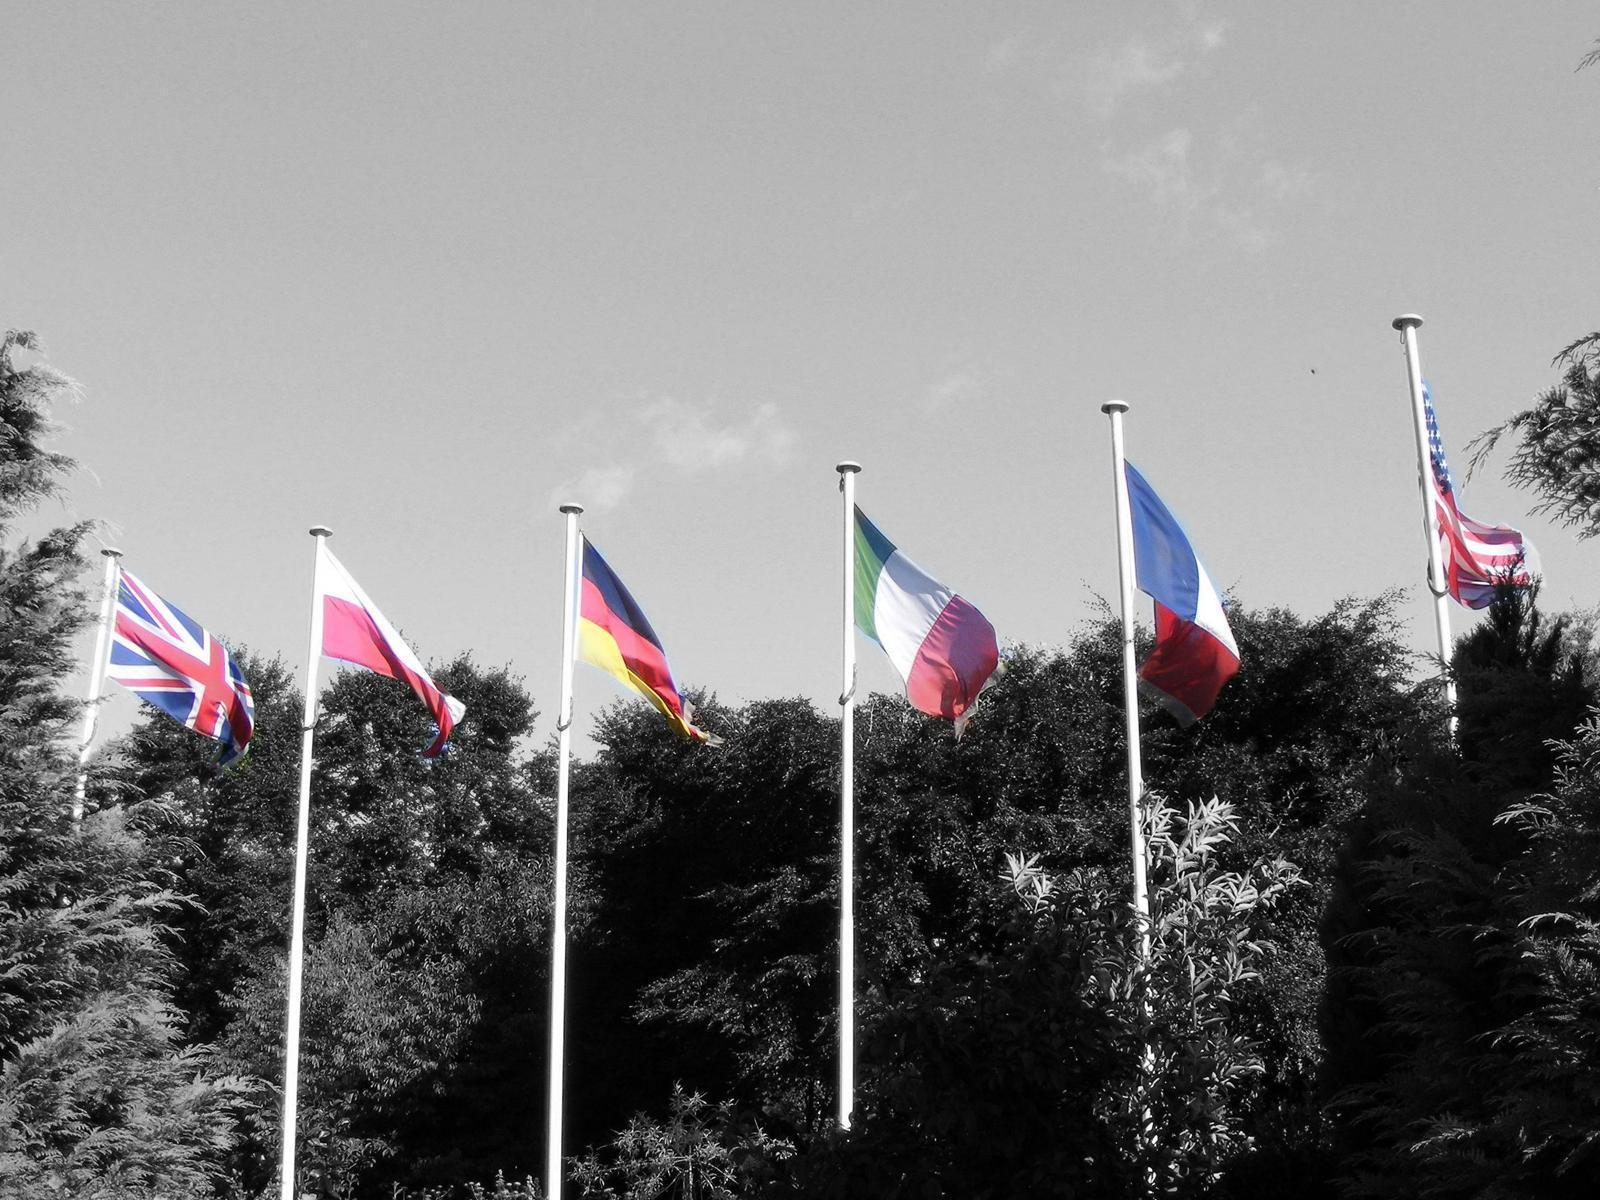 Flags Of The World Photography Wallpaper 2373292 Fanpop